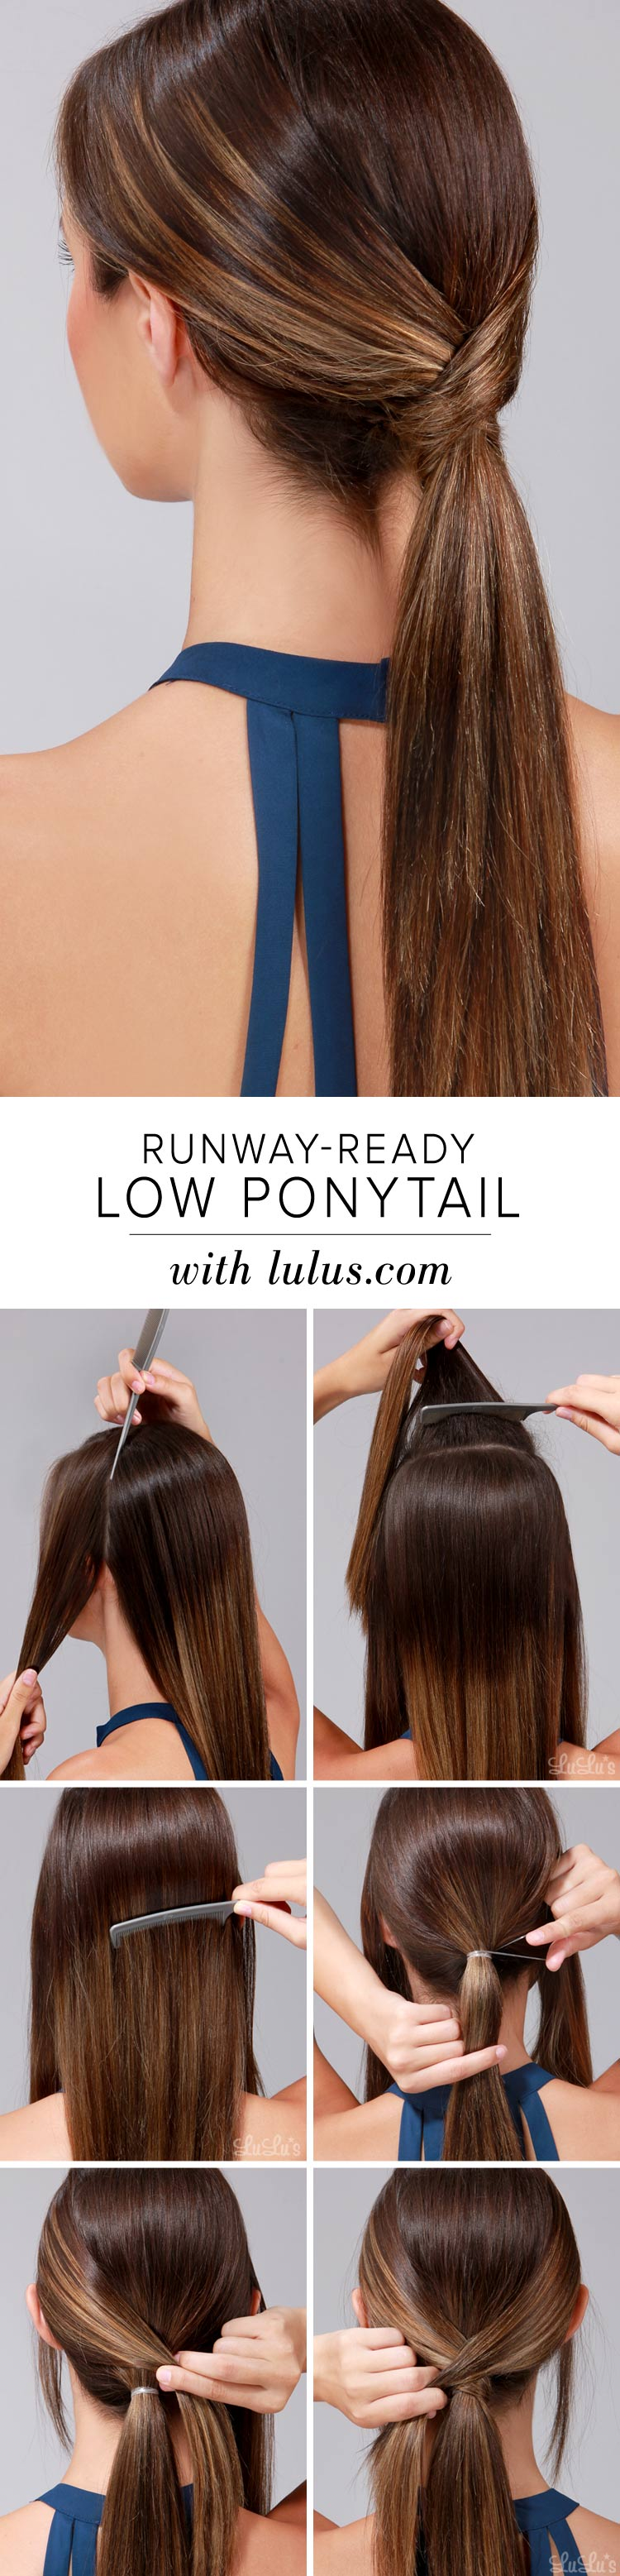 22 Runway Ready Low Ponytail Hairtyle